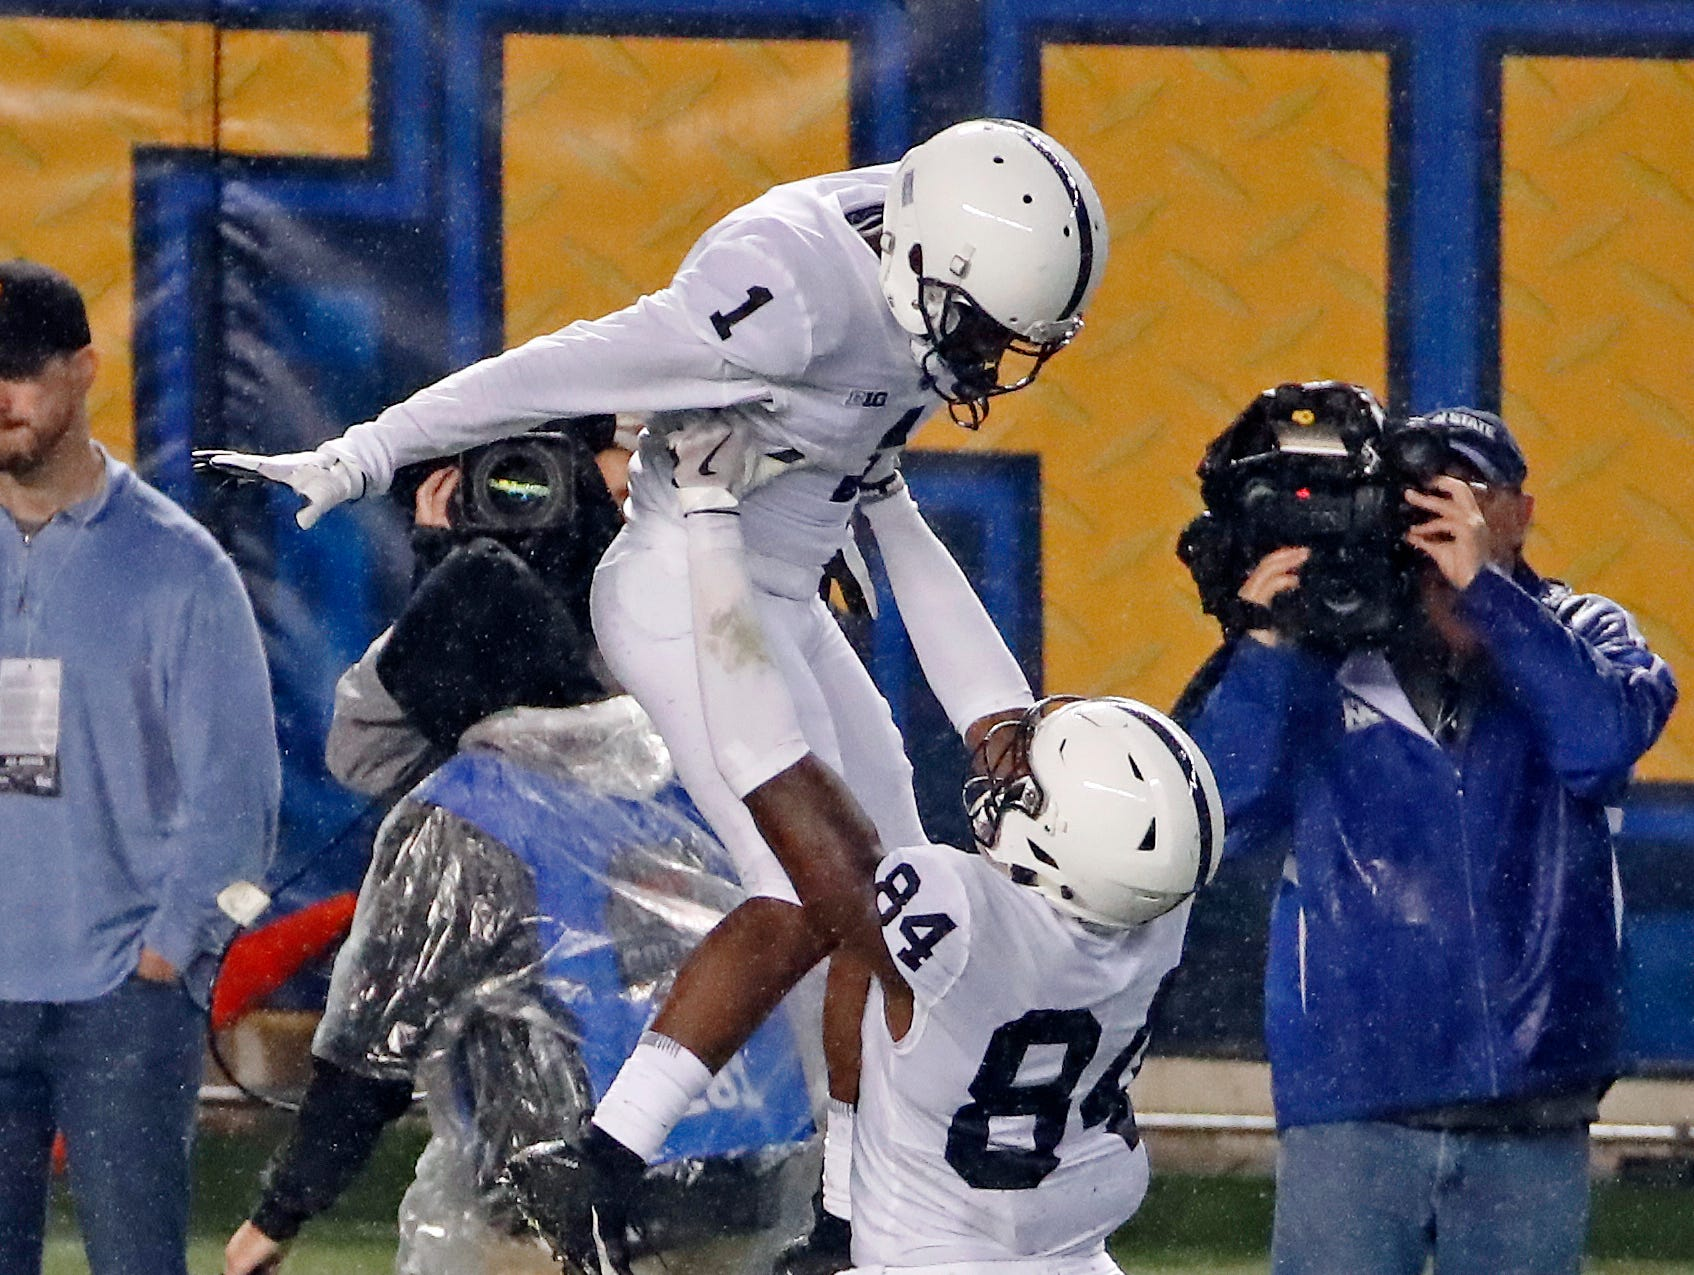 Penn State wide receiver KJ Hamler (1) is hoisted by Juwan Johnson (84) after scoring a touchdown during the first half of an NCAA college football game against Pittsburgh in Pittsburgh, Saturday, Sept. 8, 2018.